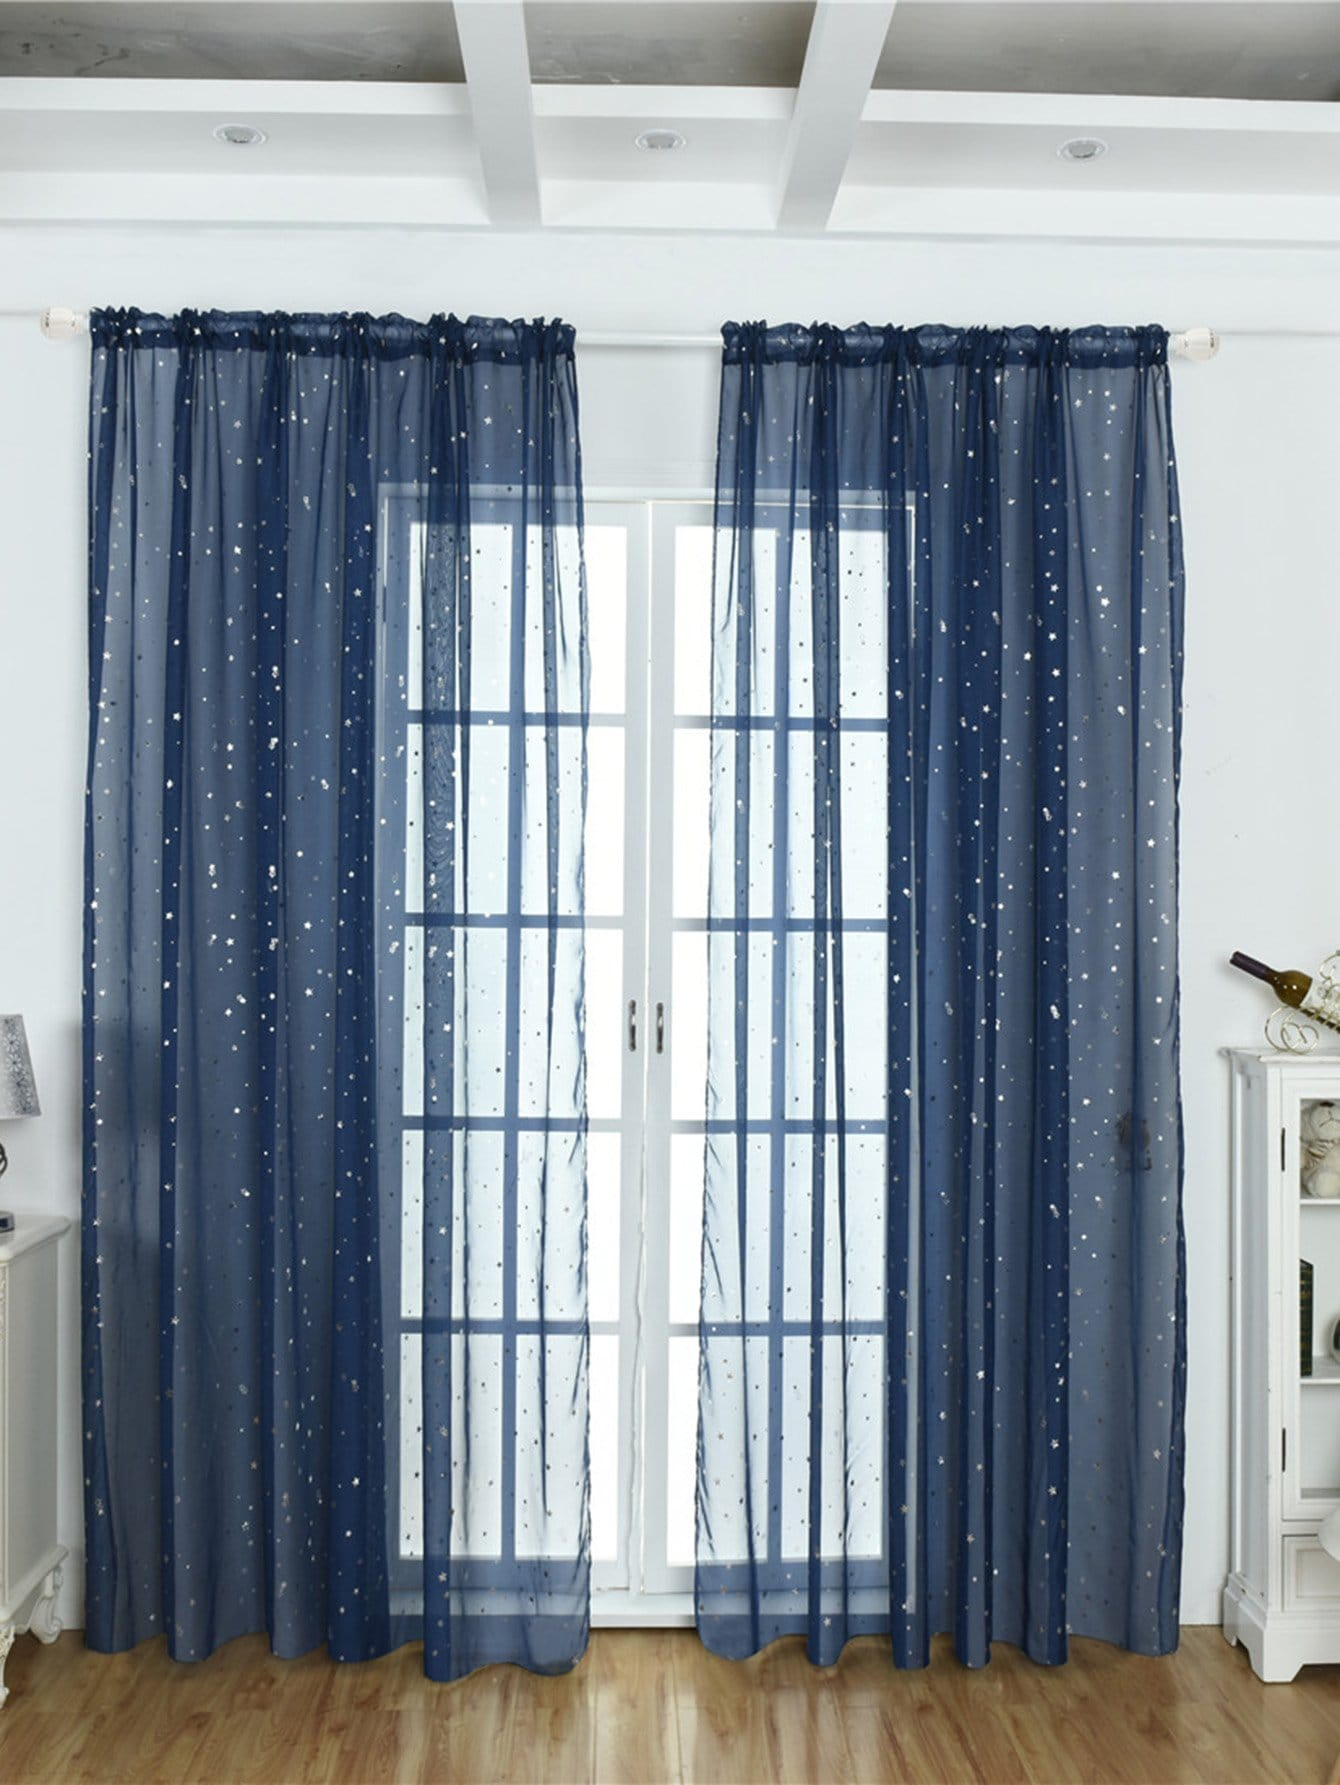 Star Decor Rod Pocket Sheer Curtain 1pc floral print rod pocket sheer curtain 1pc